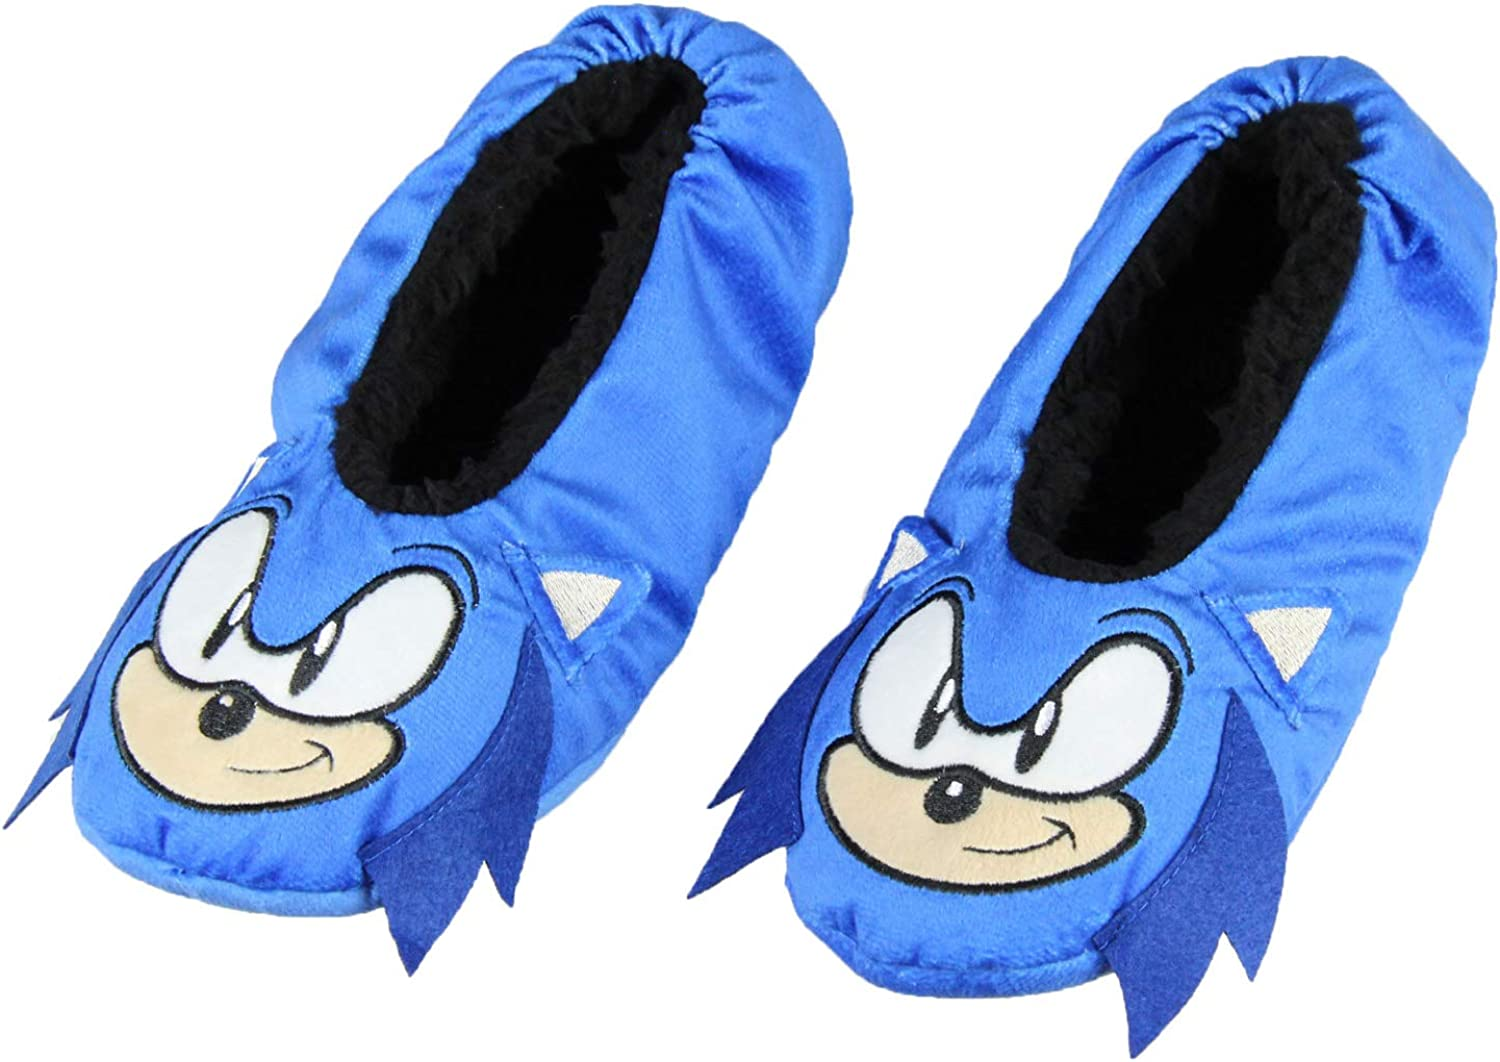 Sonic The Hedgehog Slippers 3D with Character Socks No-S Industry No. 1 Slipper Max 82% OFF